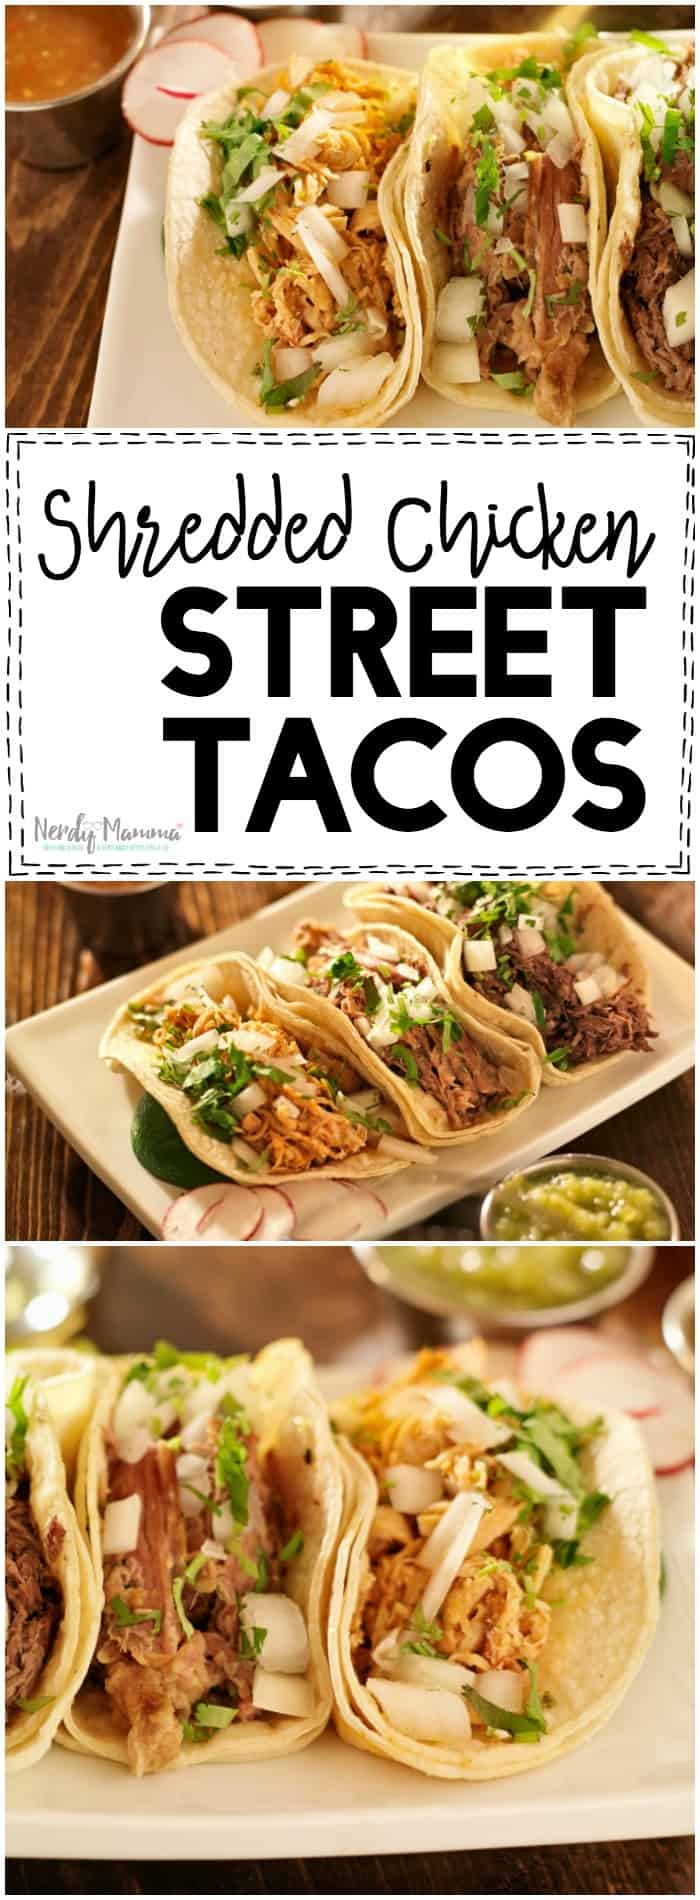 I have this rockin' recipe for Shredded Chicken Street Tacos that I've just been sitting on and sitting on. And so, I decided to try it. Oh, my, oh, my. It was perfection. And now I'm hungry again. #nerdymammablog #chickentacos #streettacos #shreddedchickenstreettacos #tacos